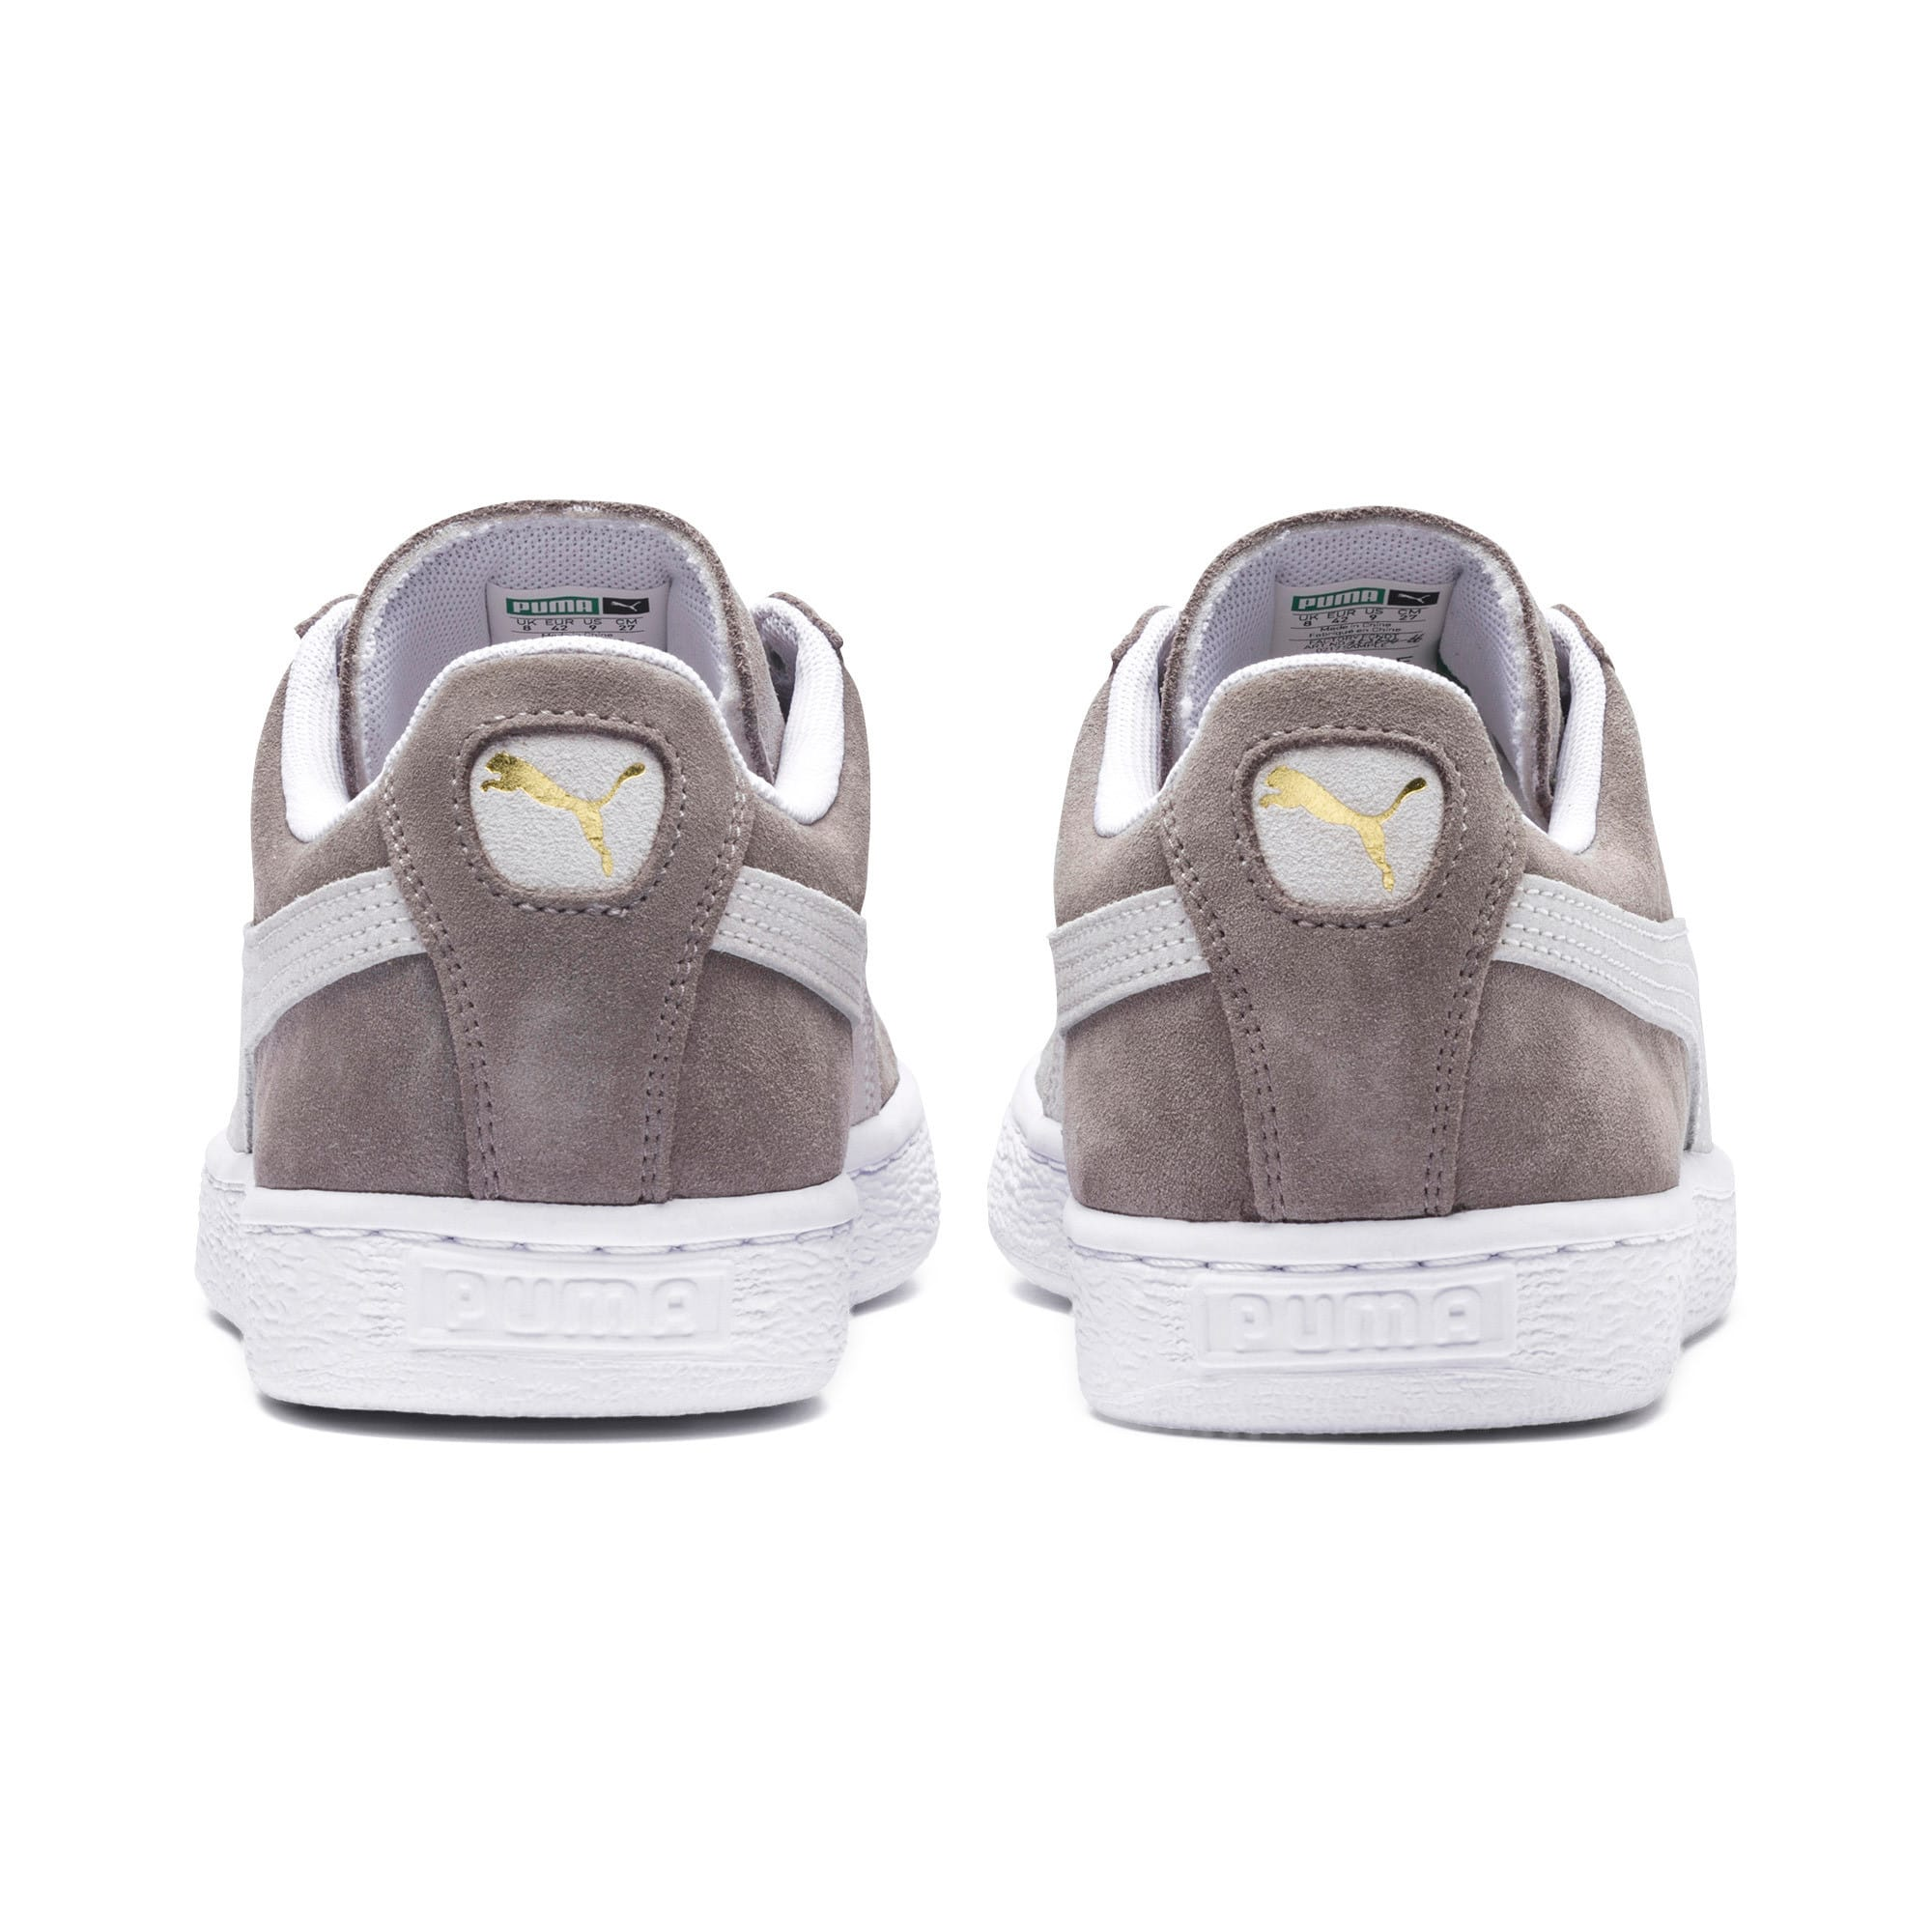 Thumbnail 3 of Suede Classic+ Sneakers, steeple gray-white, medium